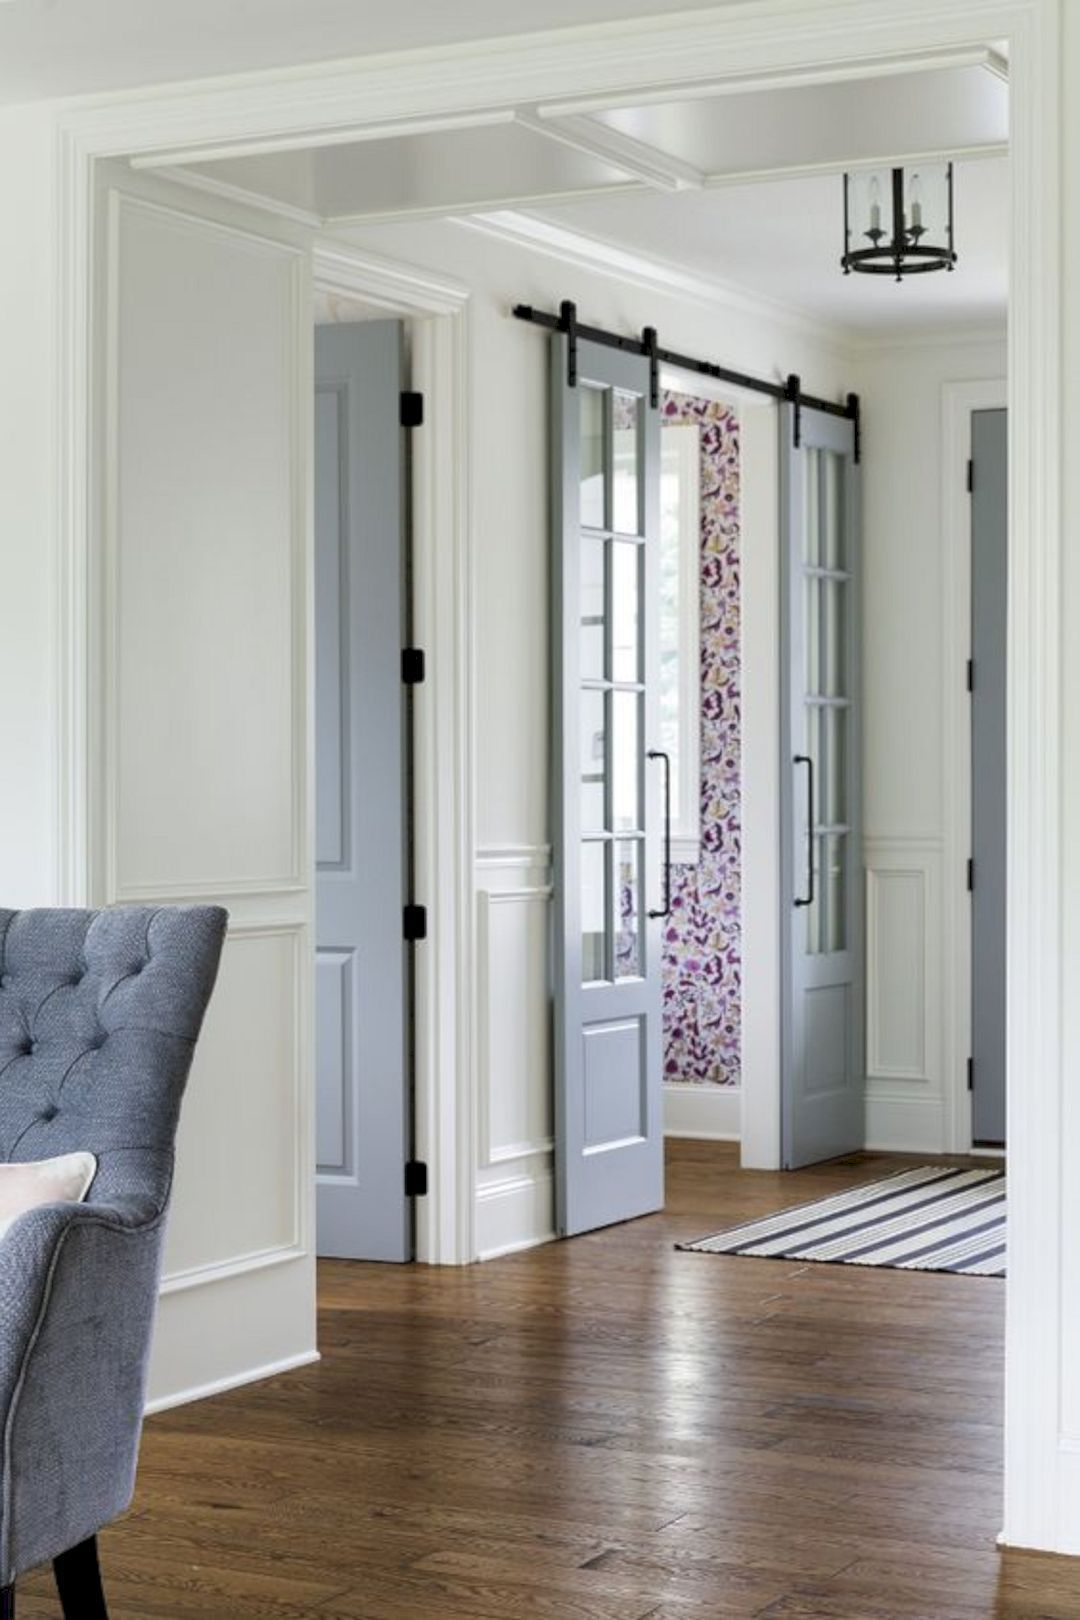 Doors Medium And Ideas: 16 Interior Design Ideas With Grey Walls